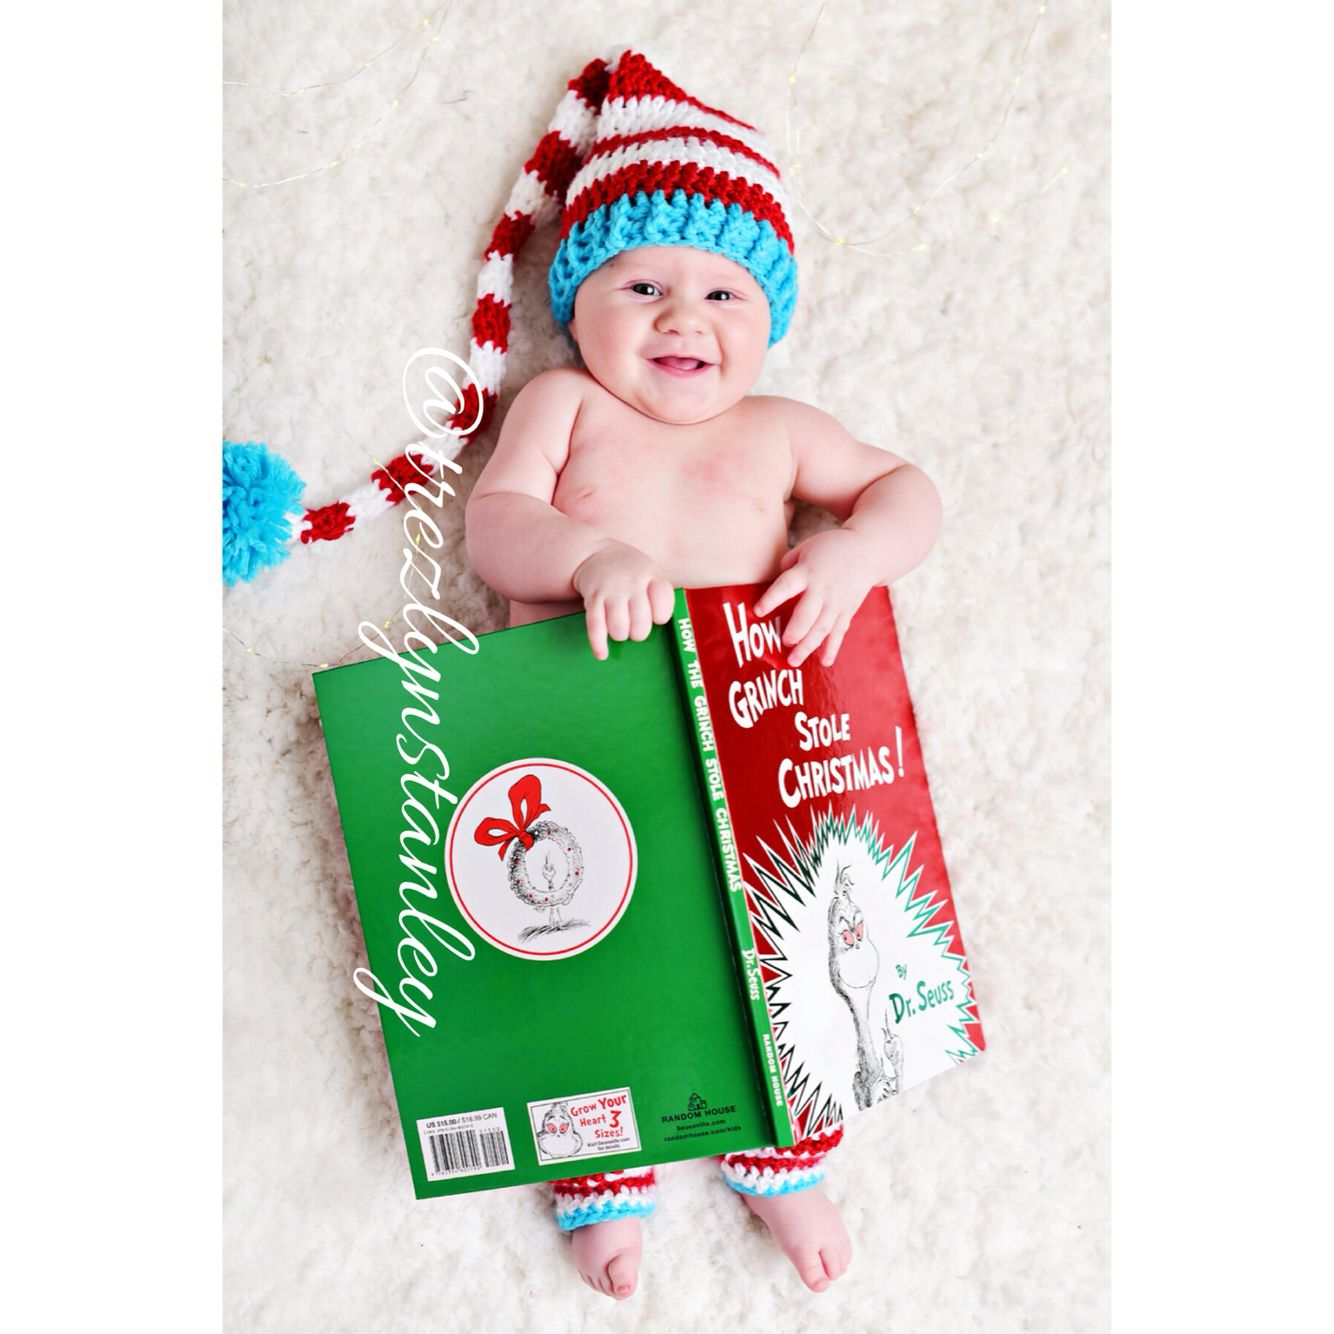 Madden's Christmas pictures 2015!